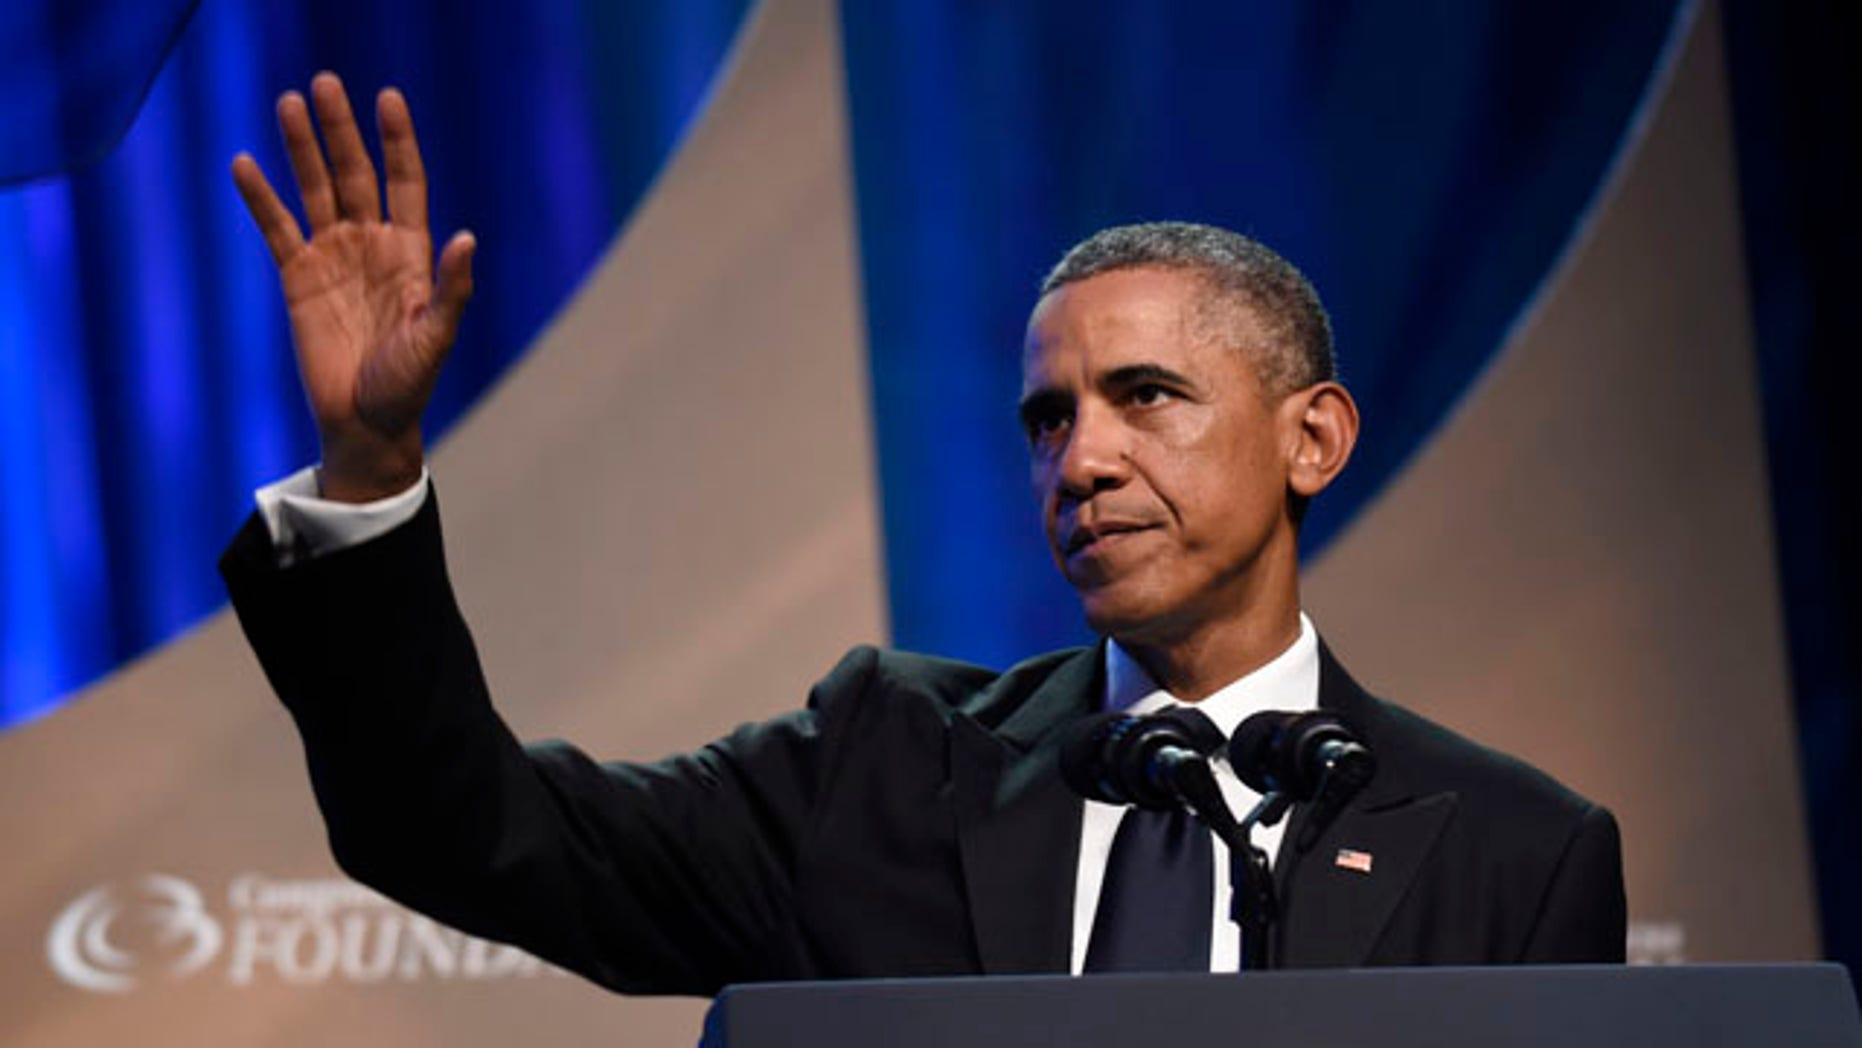 September 27, 2014: President Barack Obama waves to the crowd after speaking at the Congressional Black Caucus Foundations 44th Annual Legislative Conference Phoenix Awards Dinner in Washington. (AP Photo/Susan Walsh)